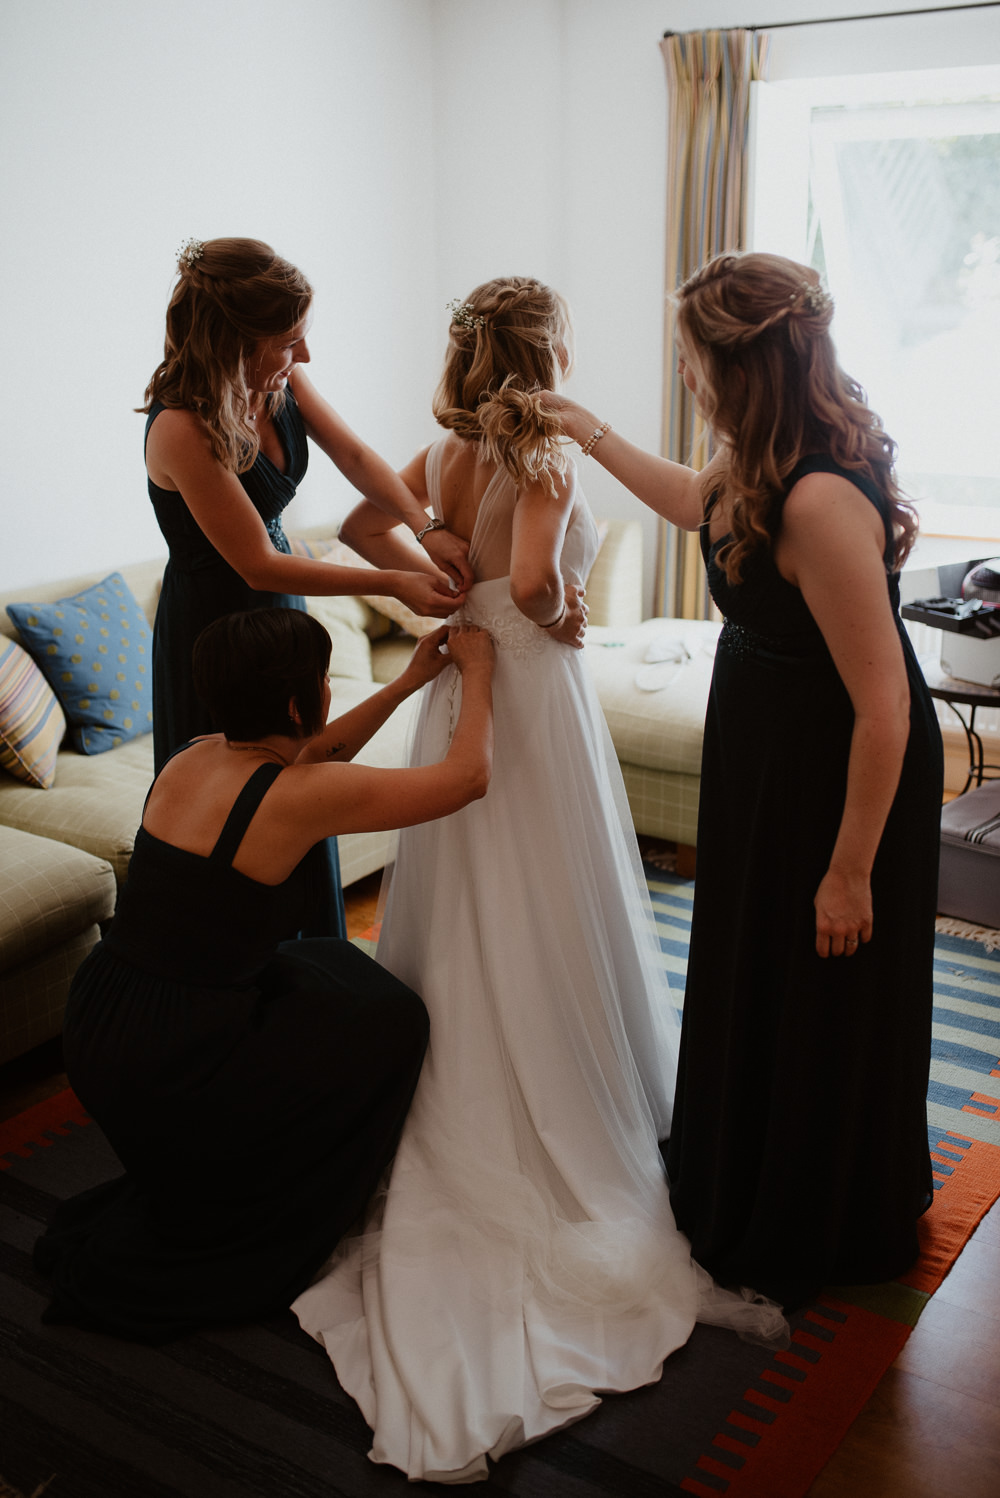 Dress Gown Bride Bridal Tulle Straps Flowing North Cornwall Wedding Taylor-Hughes Photography